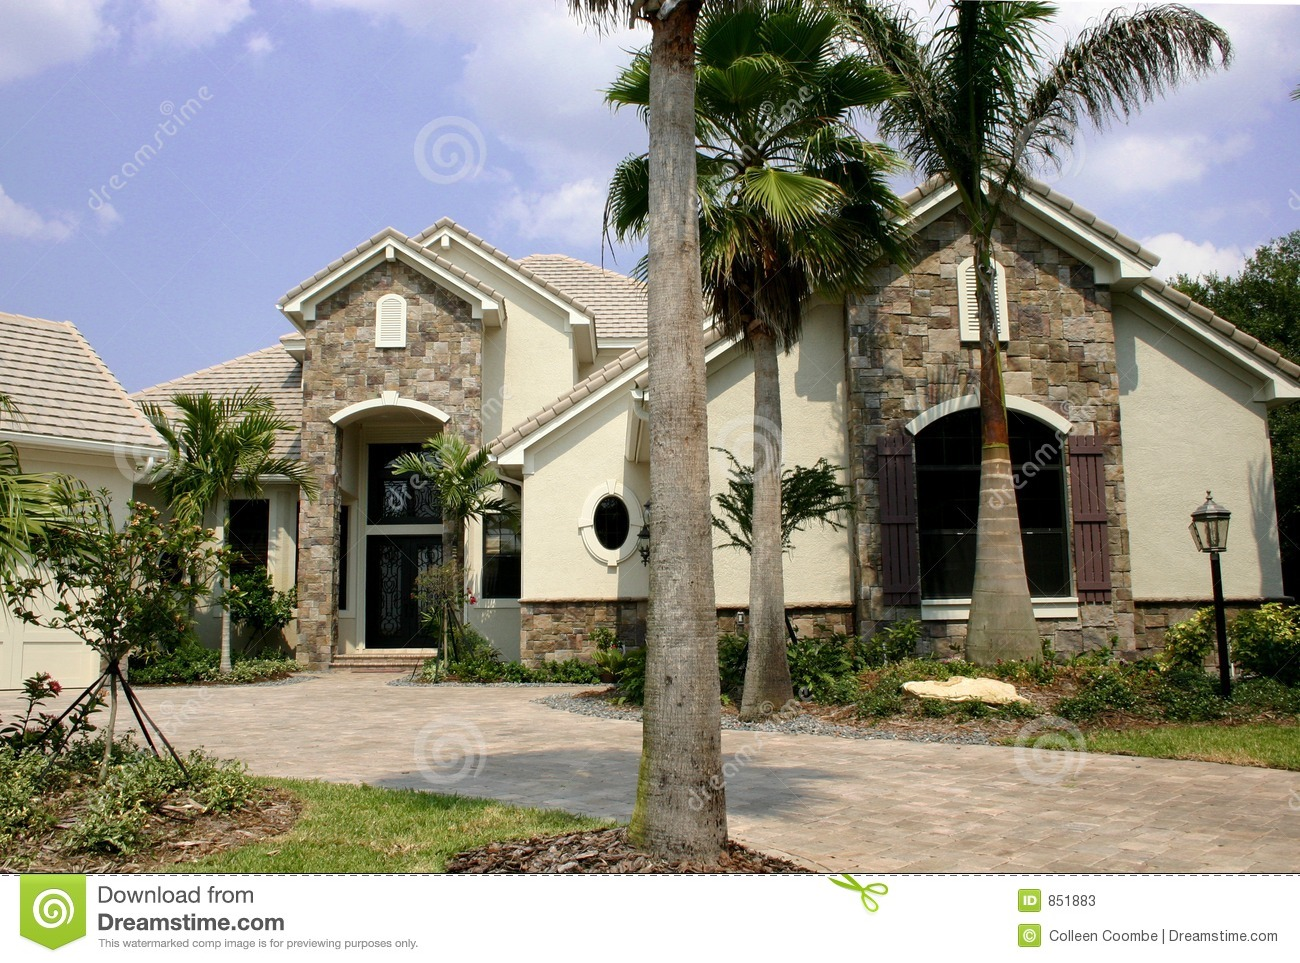 New house with stone accents stock image image 851883 for Stone accents